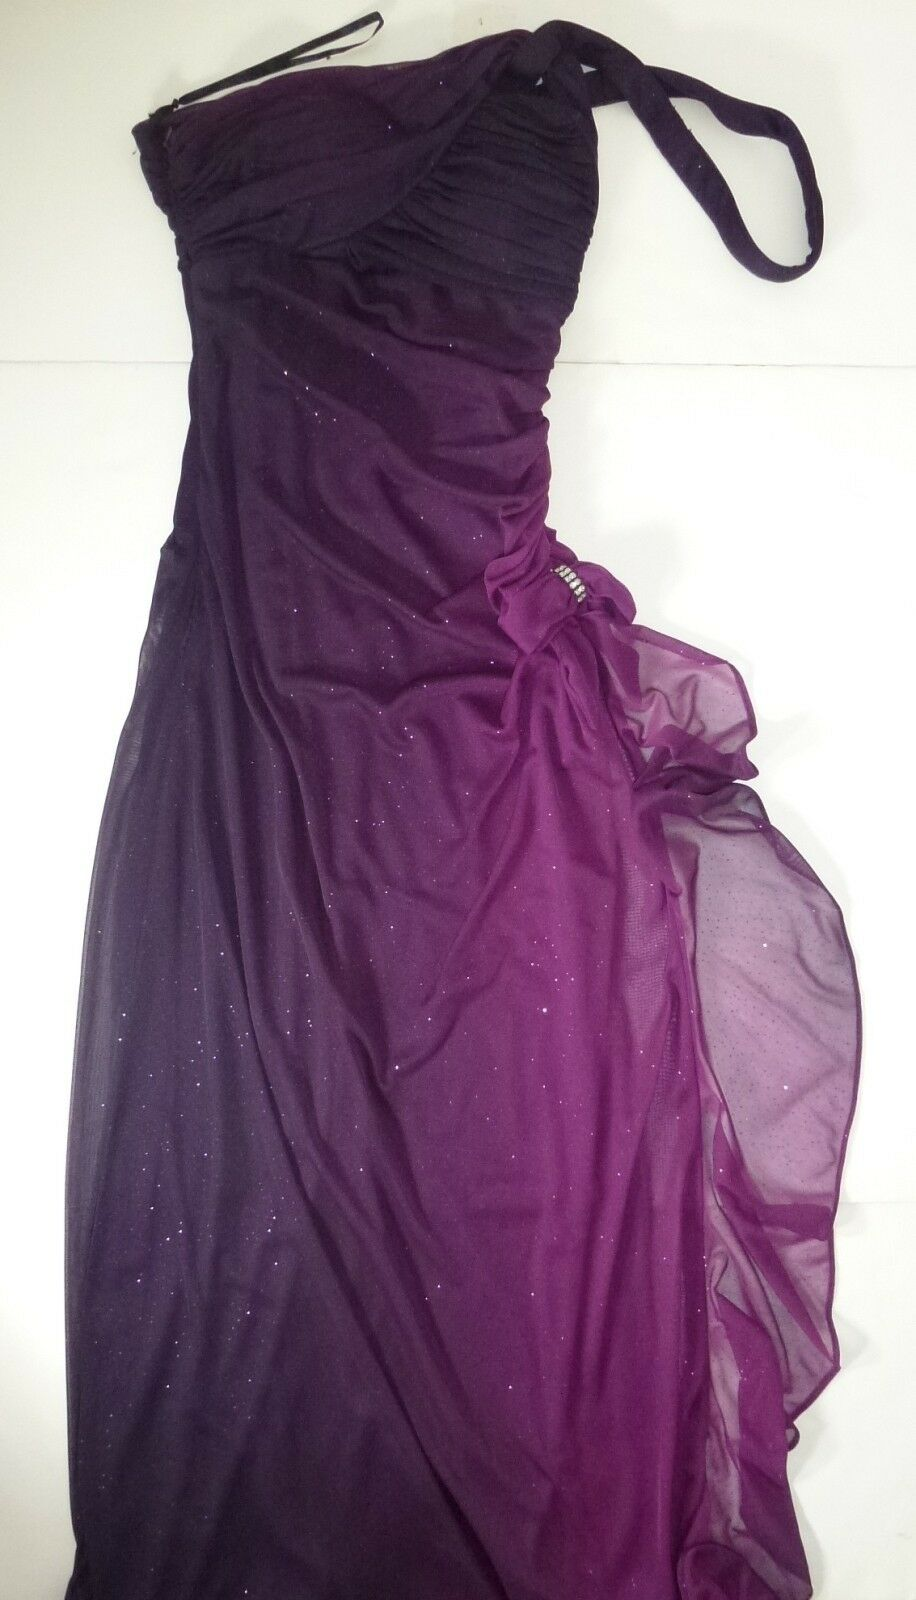 NWT BLONDIE WOMENS LADIES PURPLE LONG PROM DRESS SIZE 5 E126